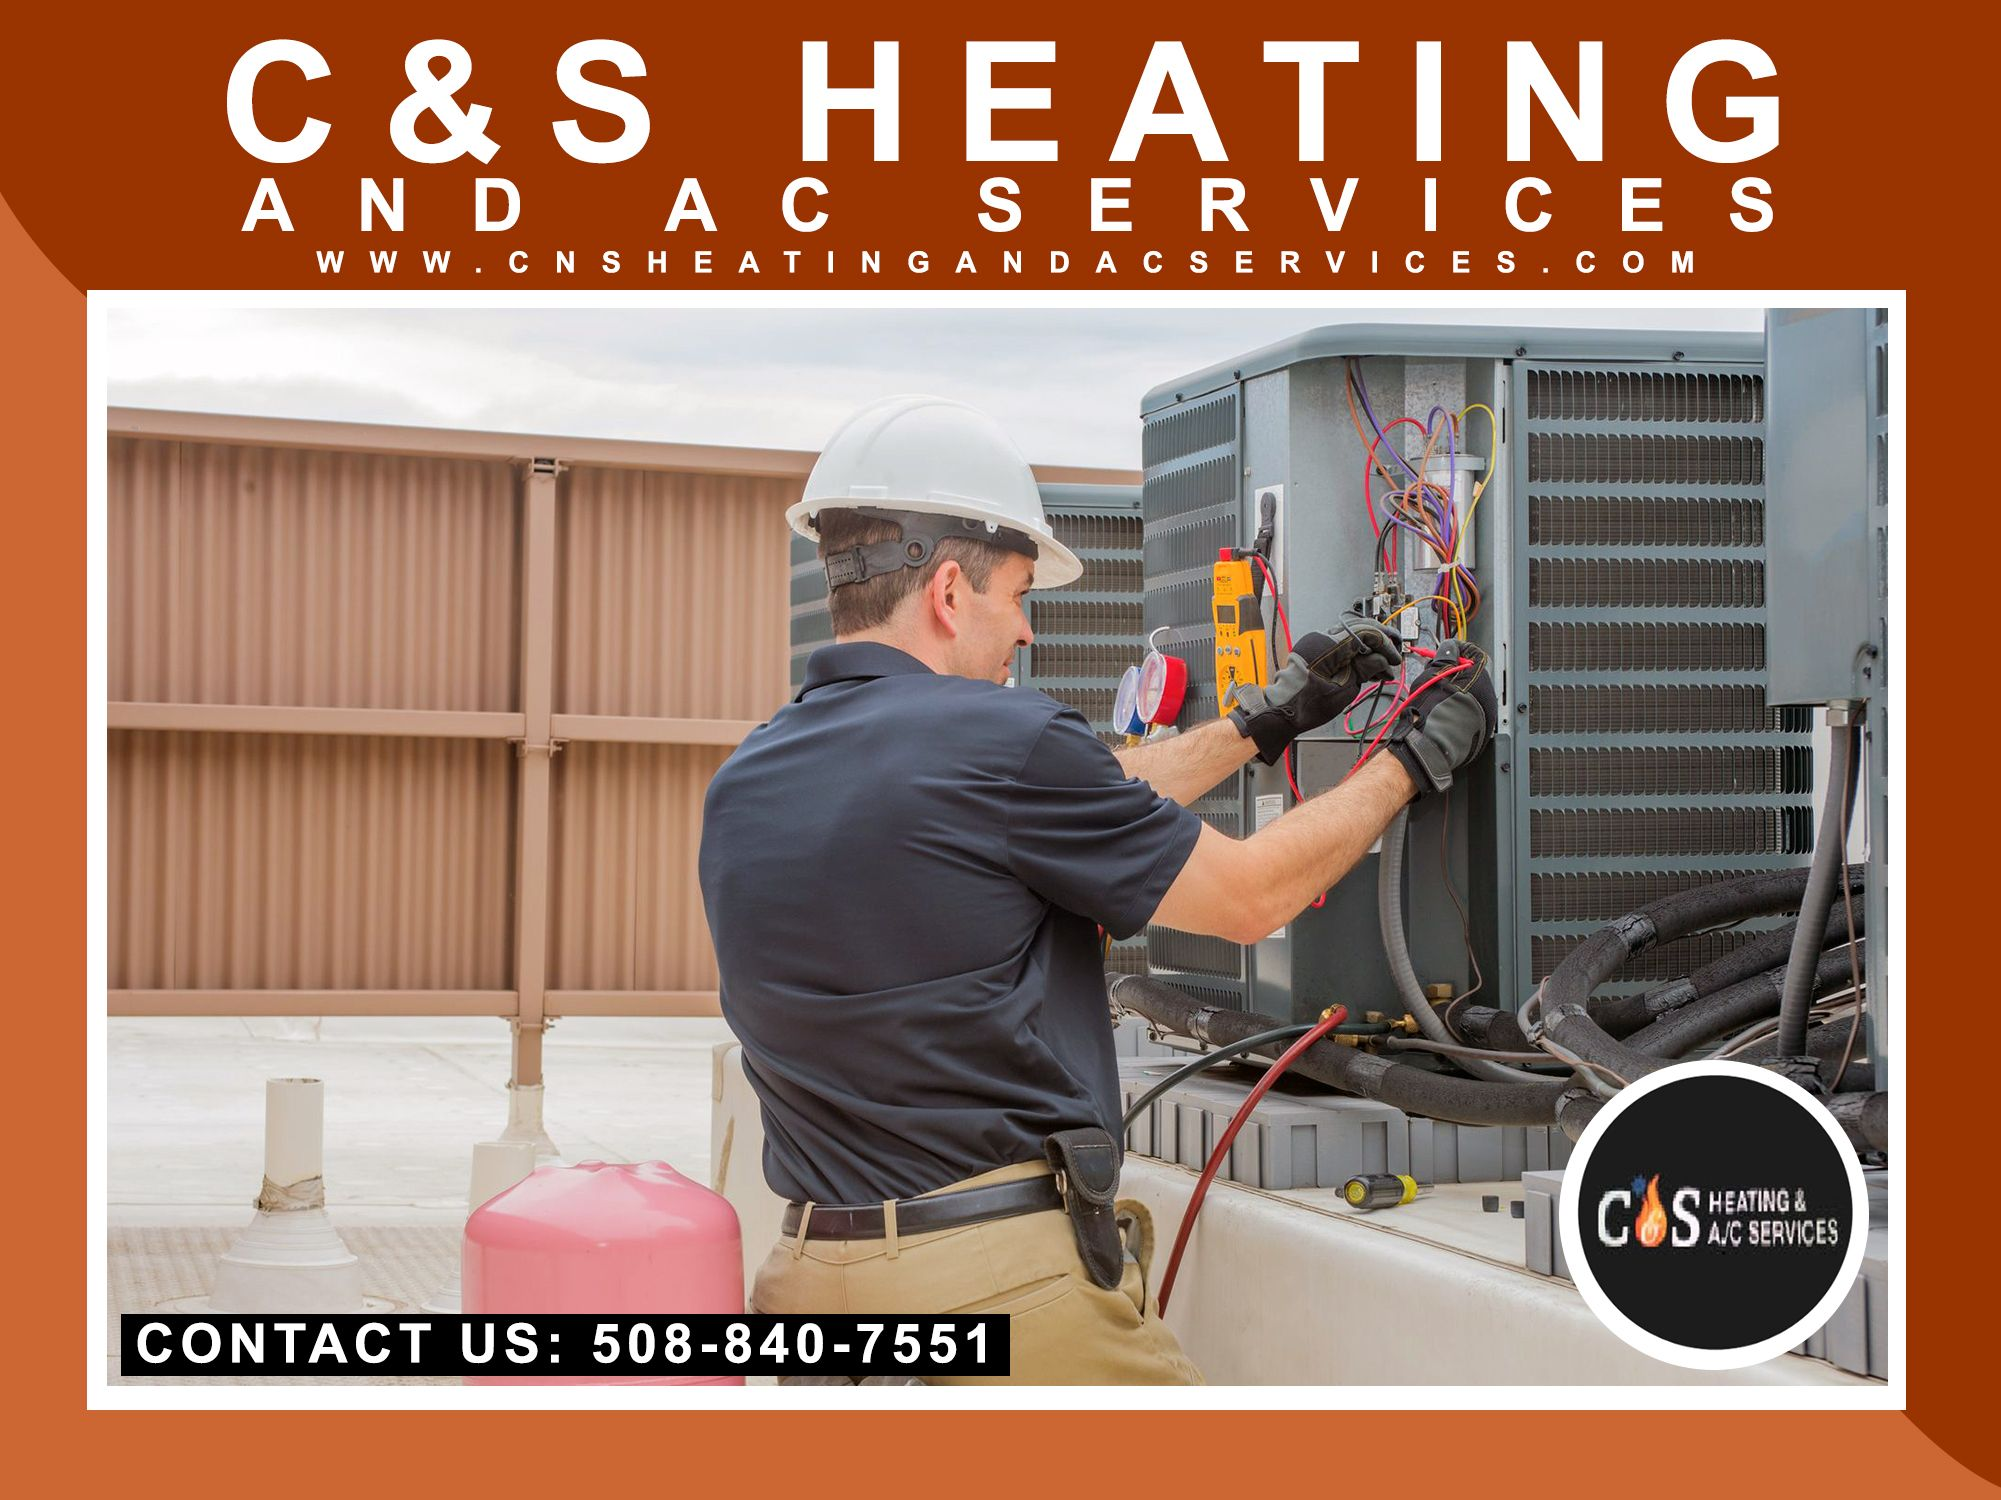 We are a fullservice HVAC contractor offering